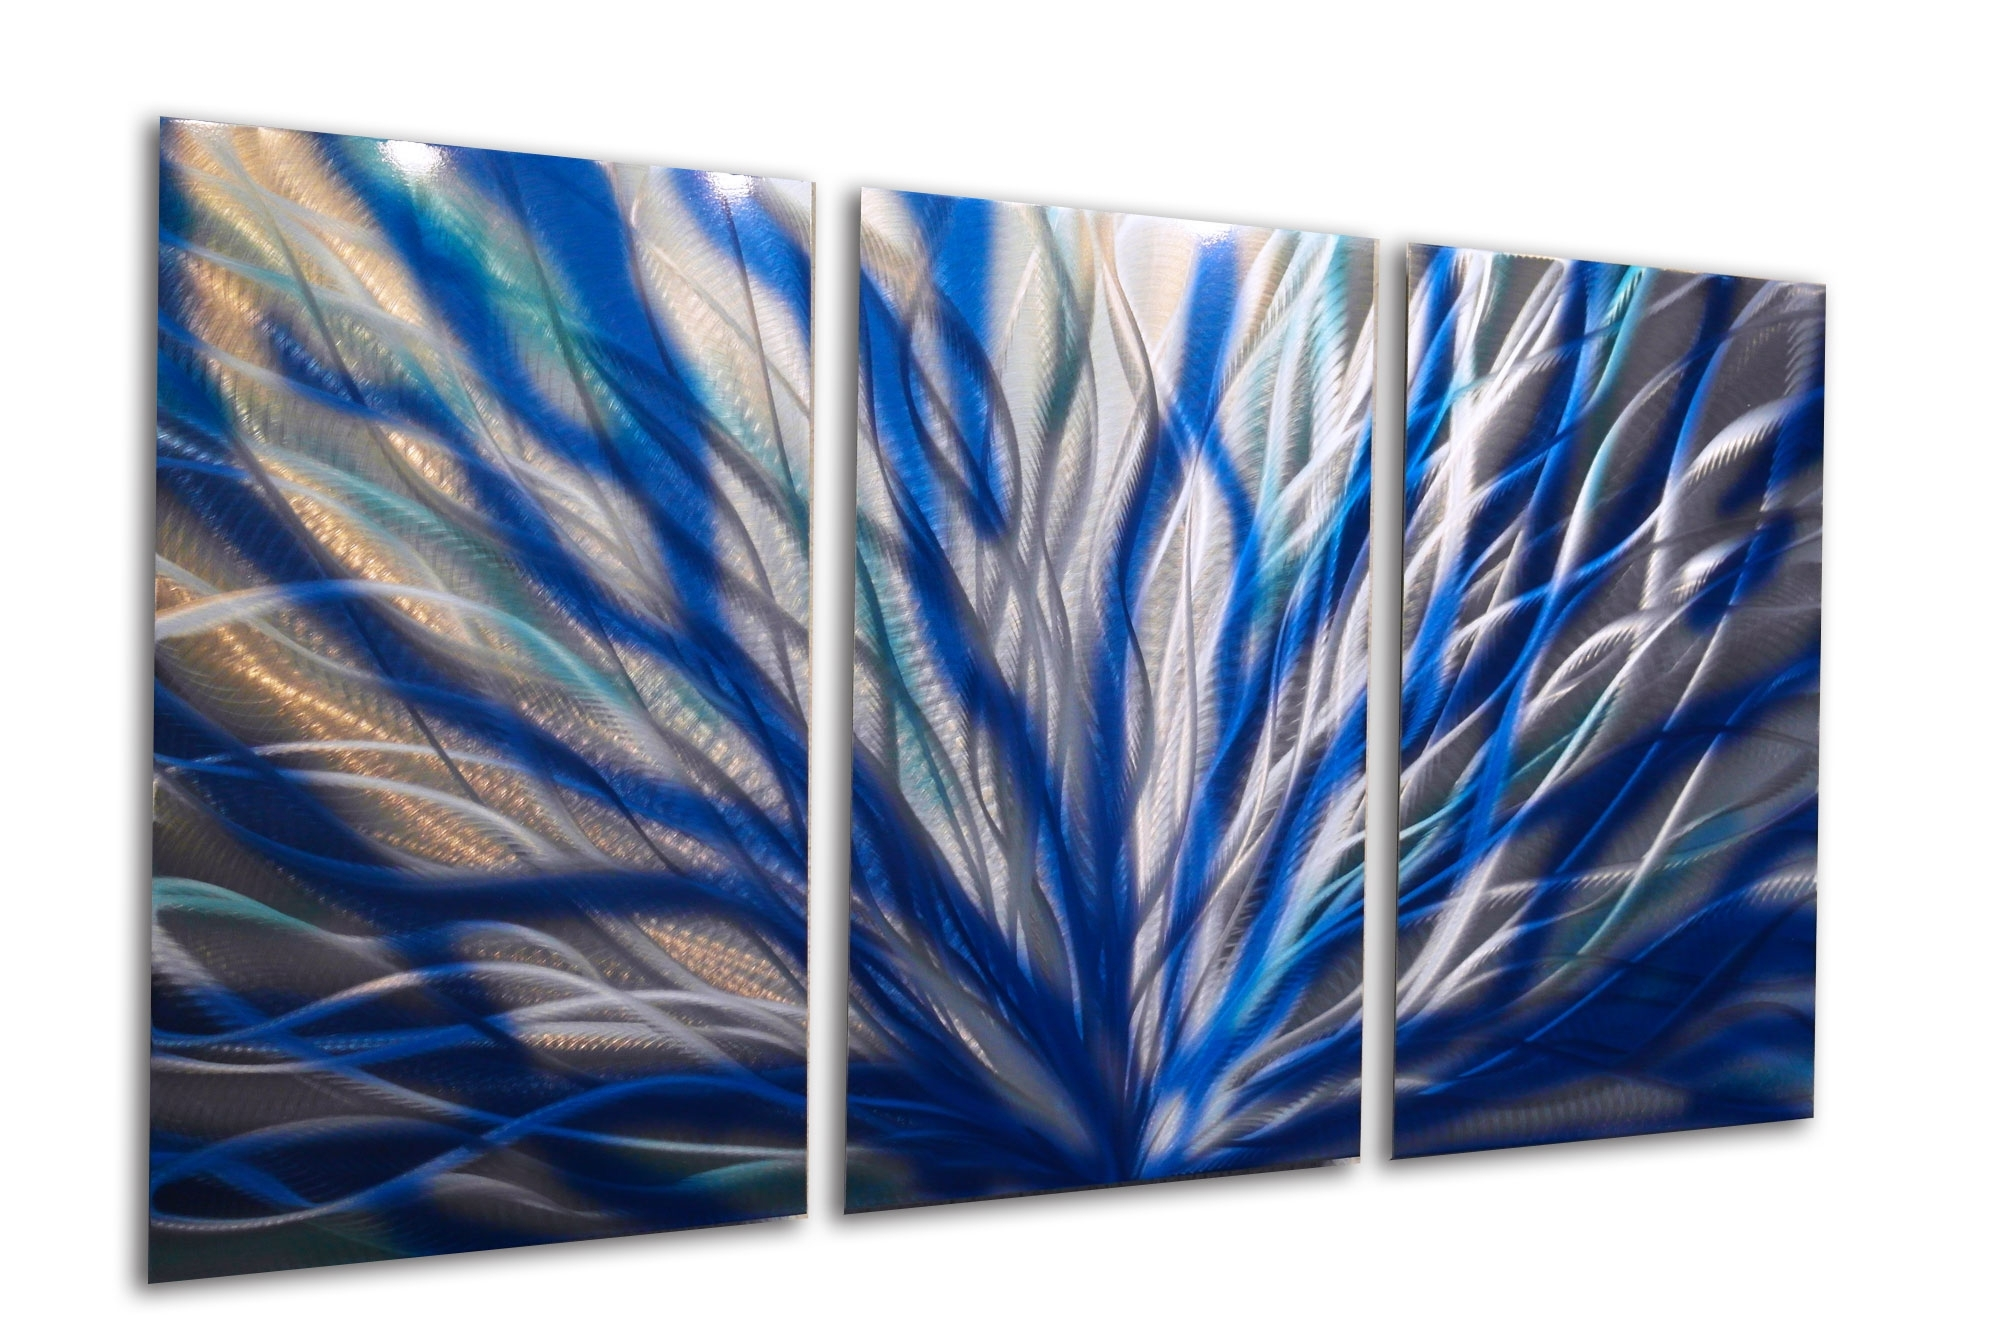 Radiance Blue 47 V2 – Metal Wall Art Abstract Sculpture Modern Regarding Best And Newest Abstract Leaf Metal Wall Art (View 16 of 20)